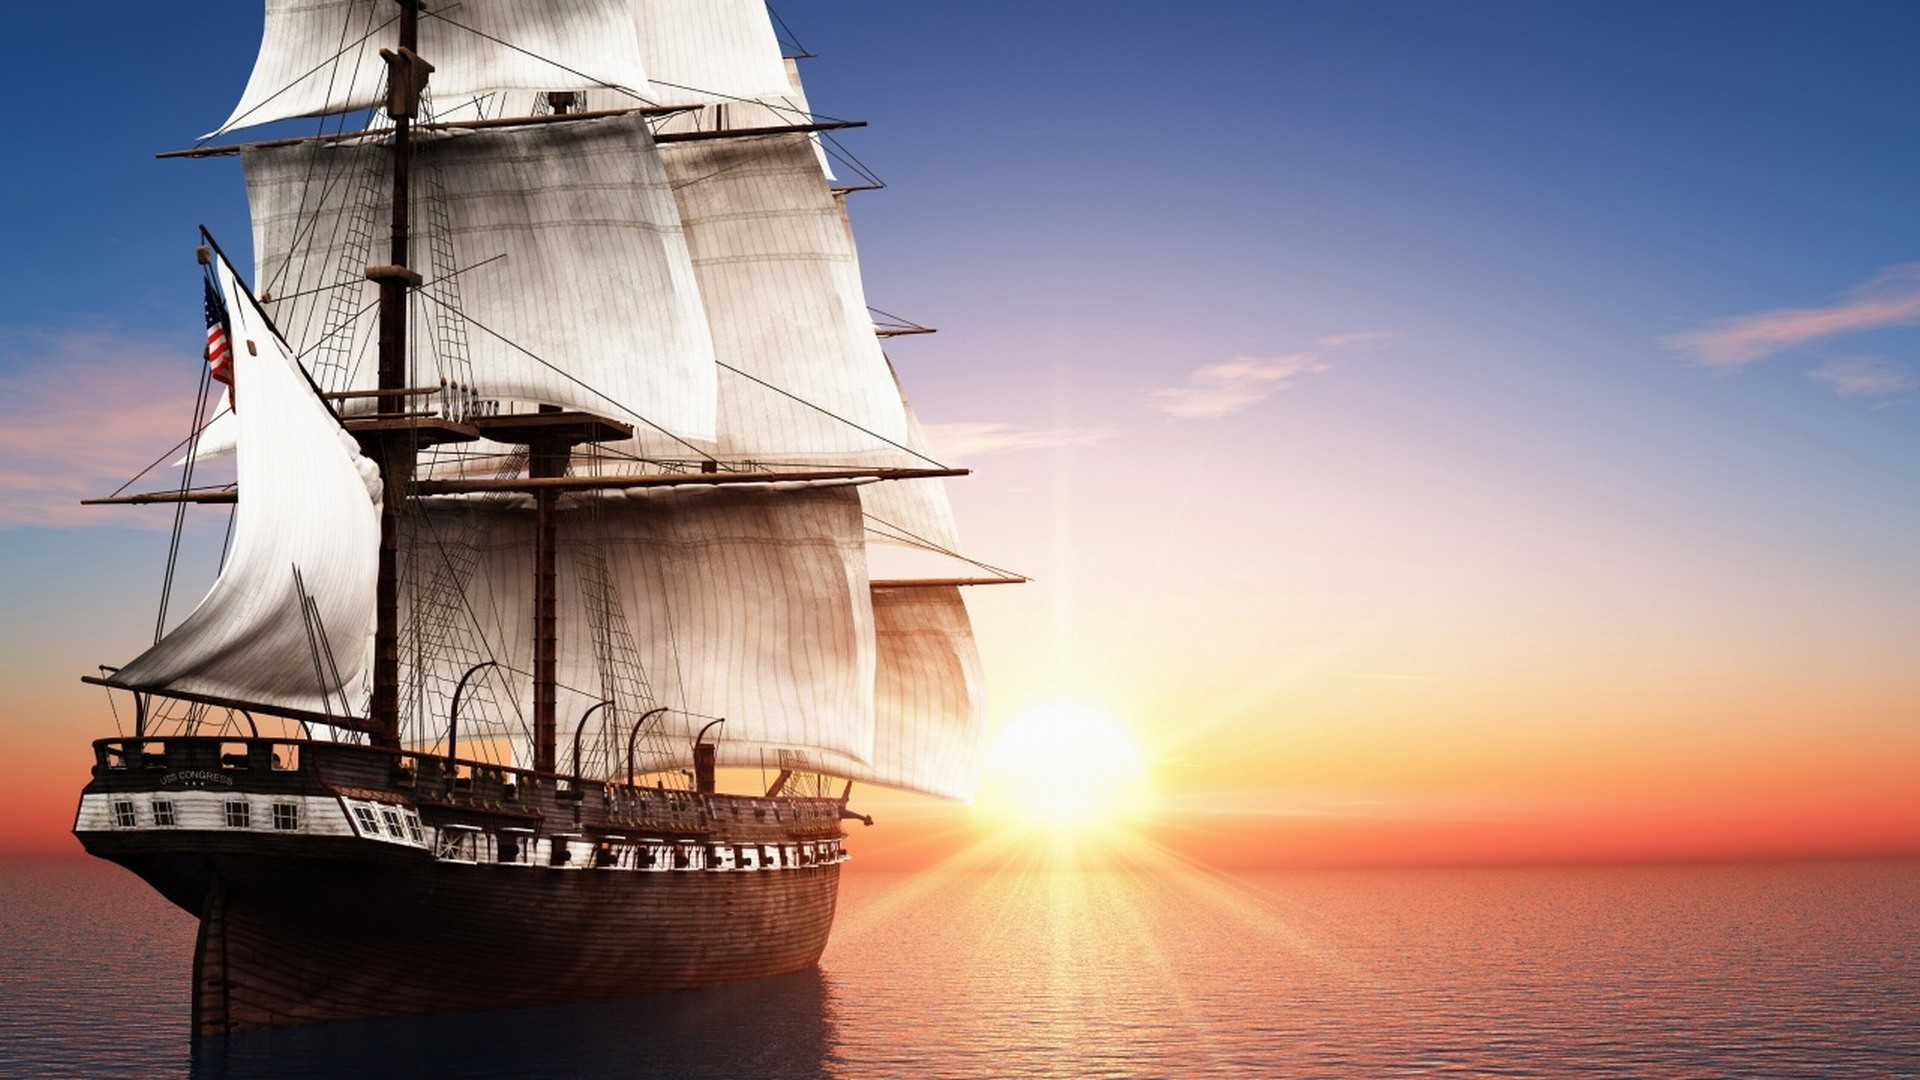 1920x1080 Sailing Ship Wallpaper